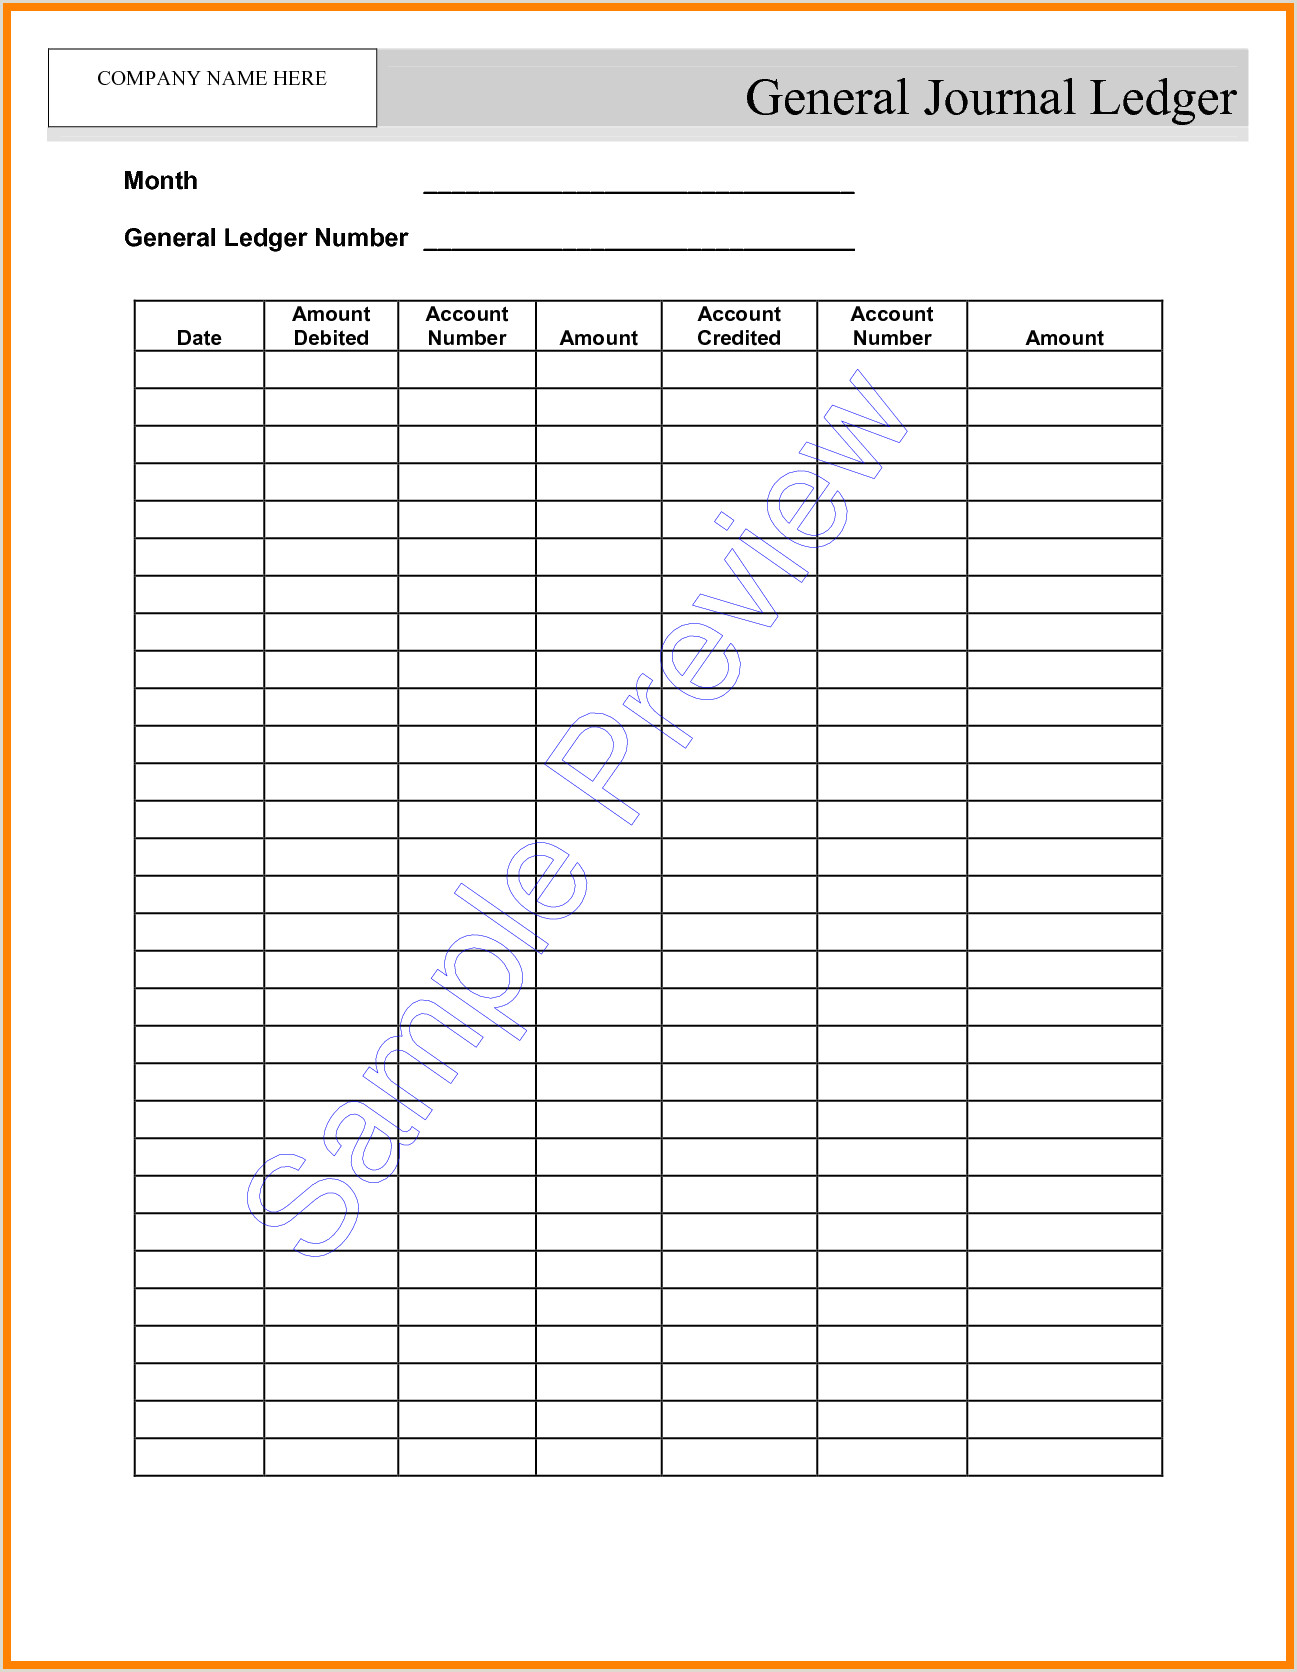 Self employment ledger template excel hpcr